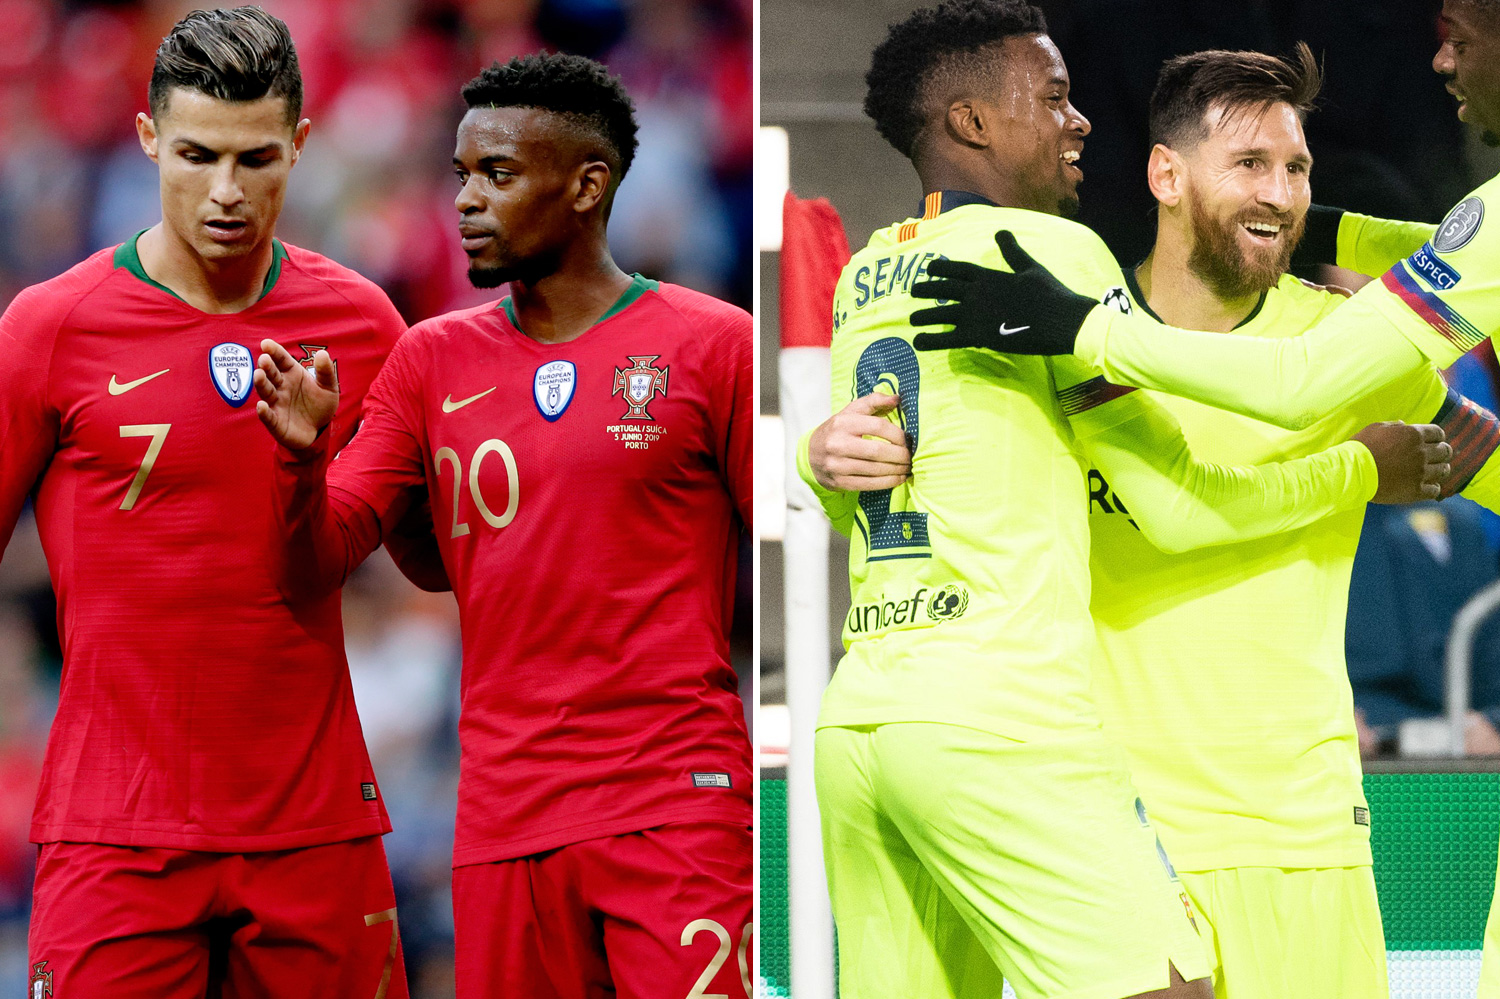 Semedo is a current team-mate of both Ronaldo and Messi